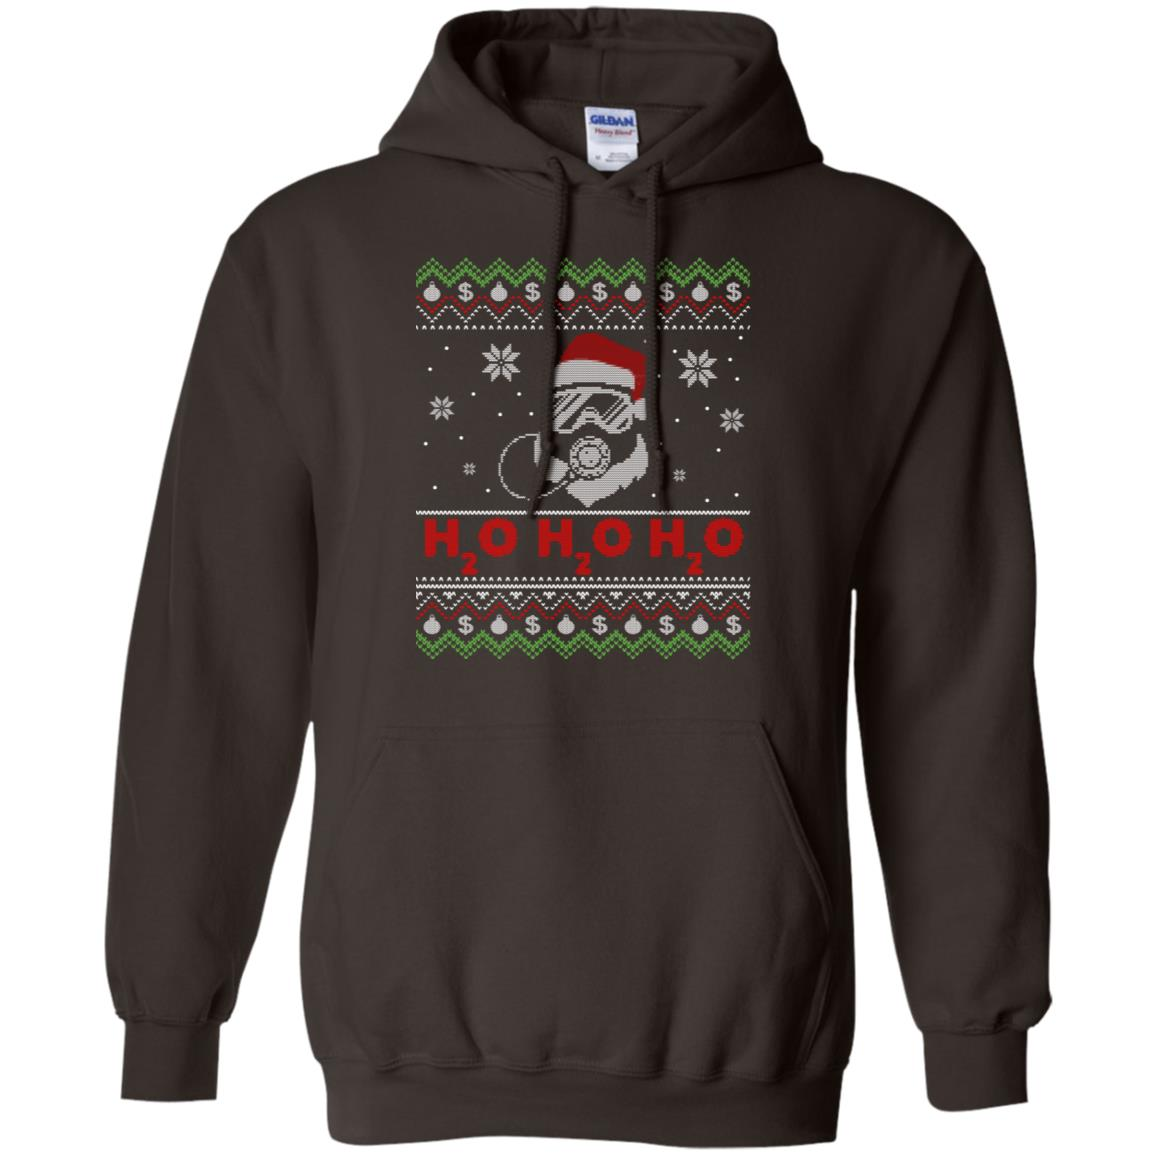 Diving Santa H2o H2o H2o funny Christmas Dive & Gift-2 Pullover Hoodie